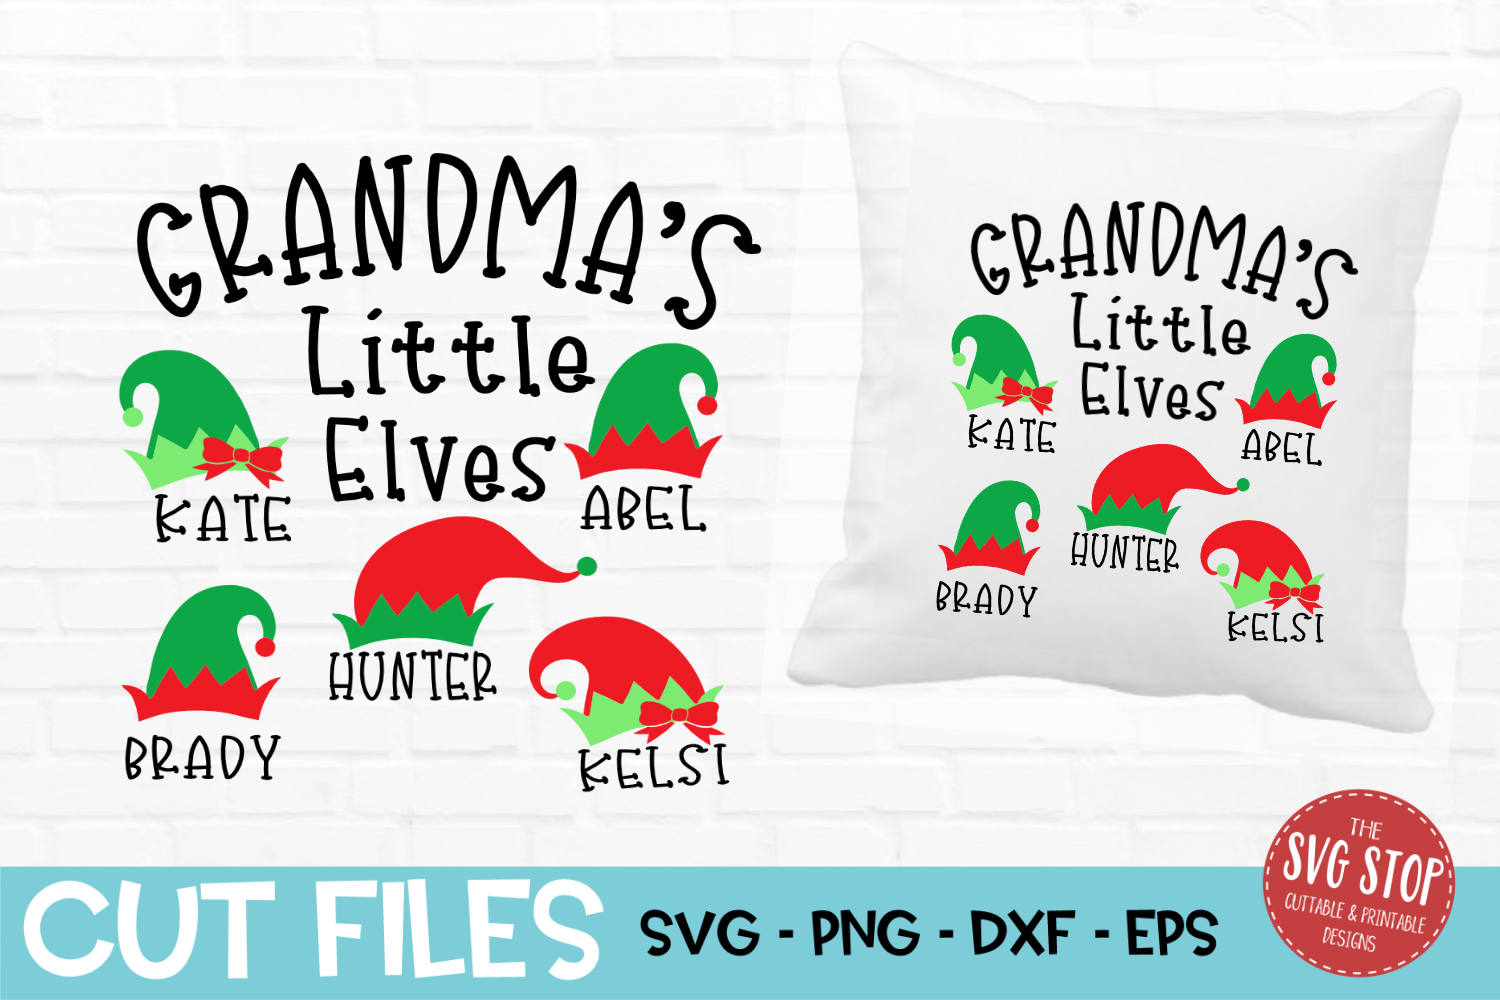 Grandma Little Elves Christmas SVG, PNG, DXF, EPS example image 1